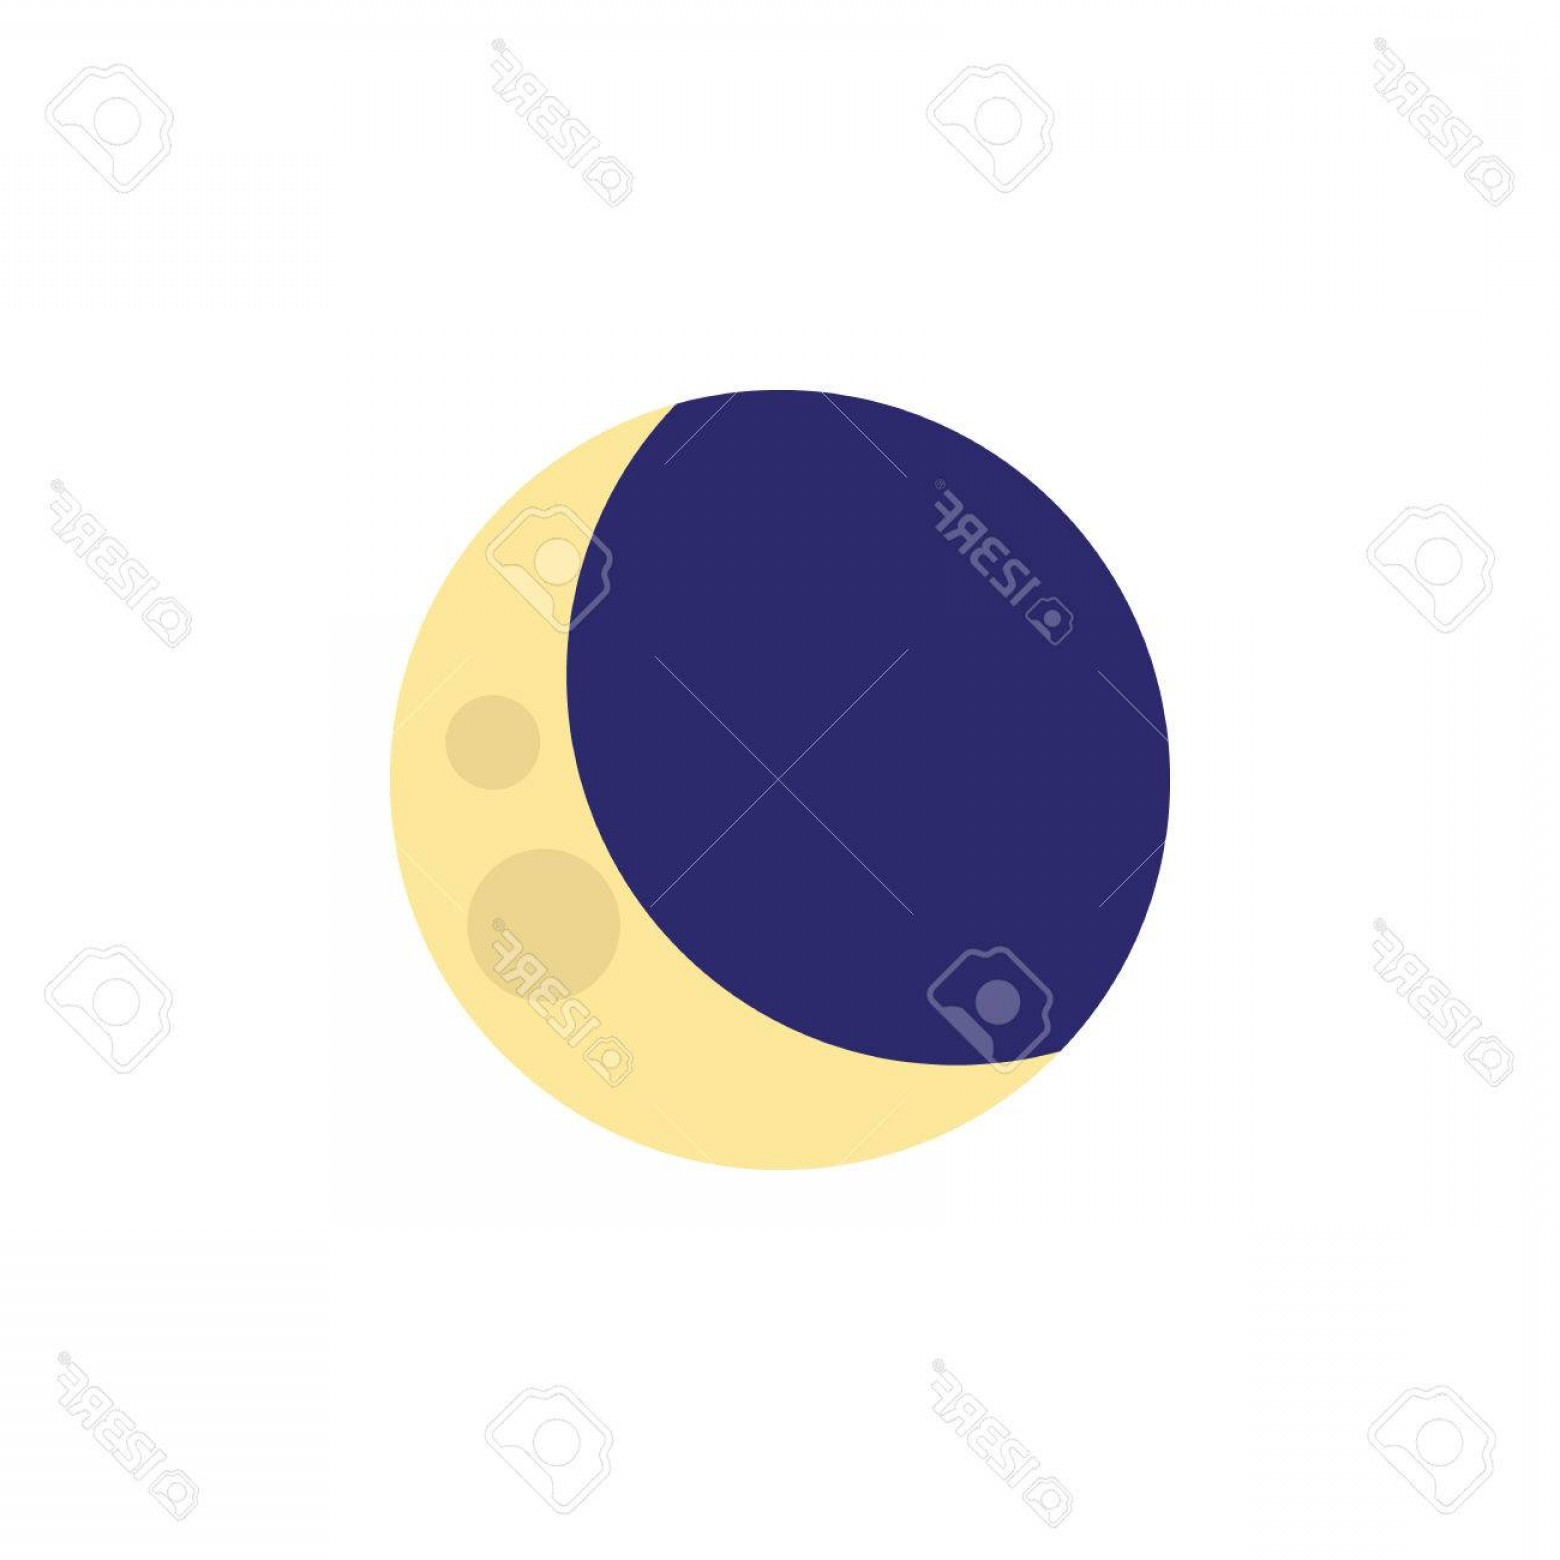 Cresent Moon Vector: Photostock Vector Isolated Crescent Flat Icon Half Moon Vector Element Can Be Used For Crescent Moon Midnight Design C